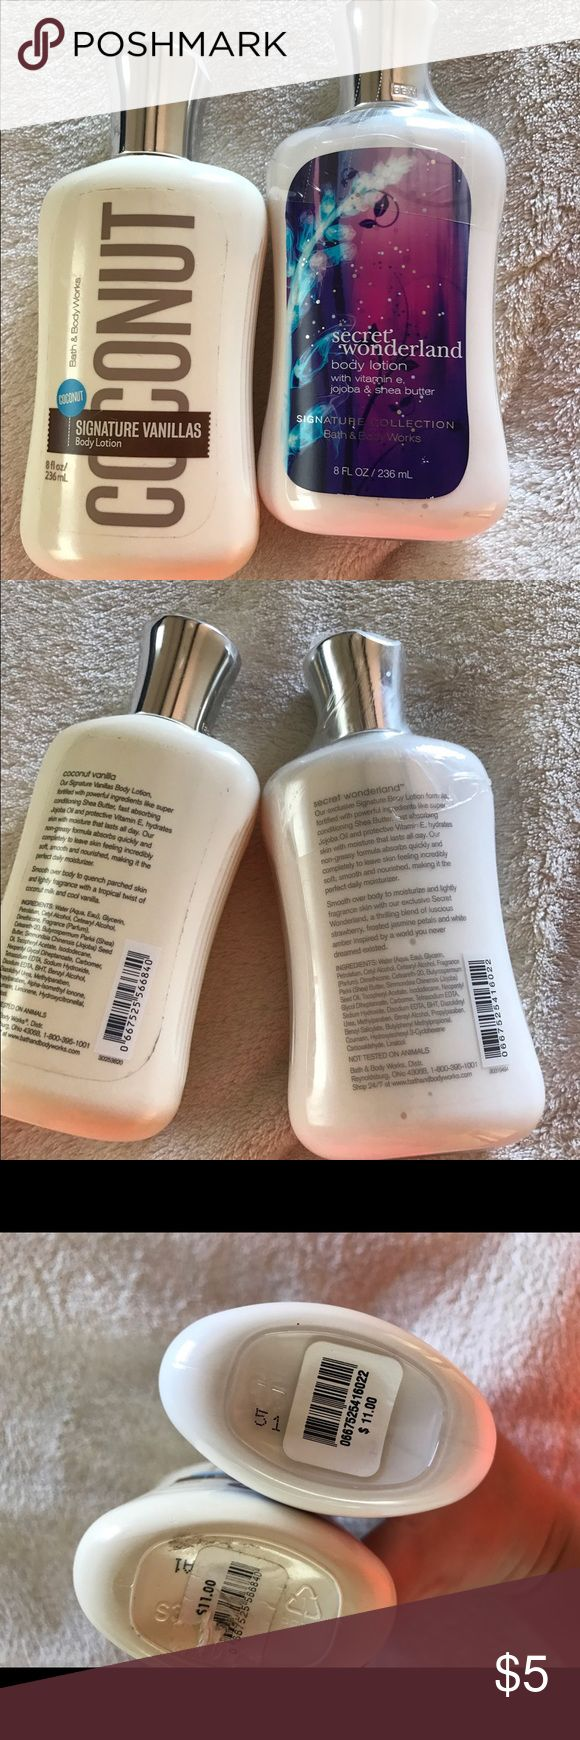 BATH N BODY WORKS LOTIONS 1 brand new and 1 open but not used. Sold together! Great smells.  Great bundle and add on item!               📦 Ships next day except Sundays. 🚫 NO TRADES Makeup